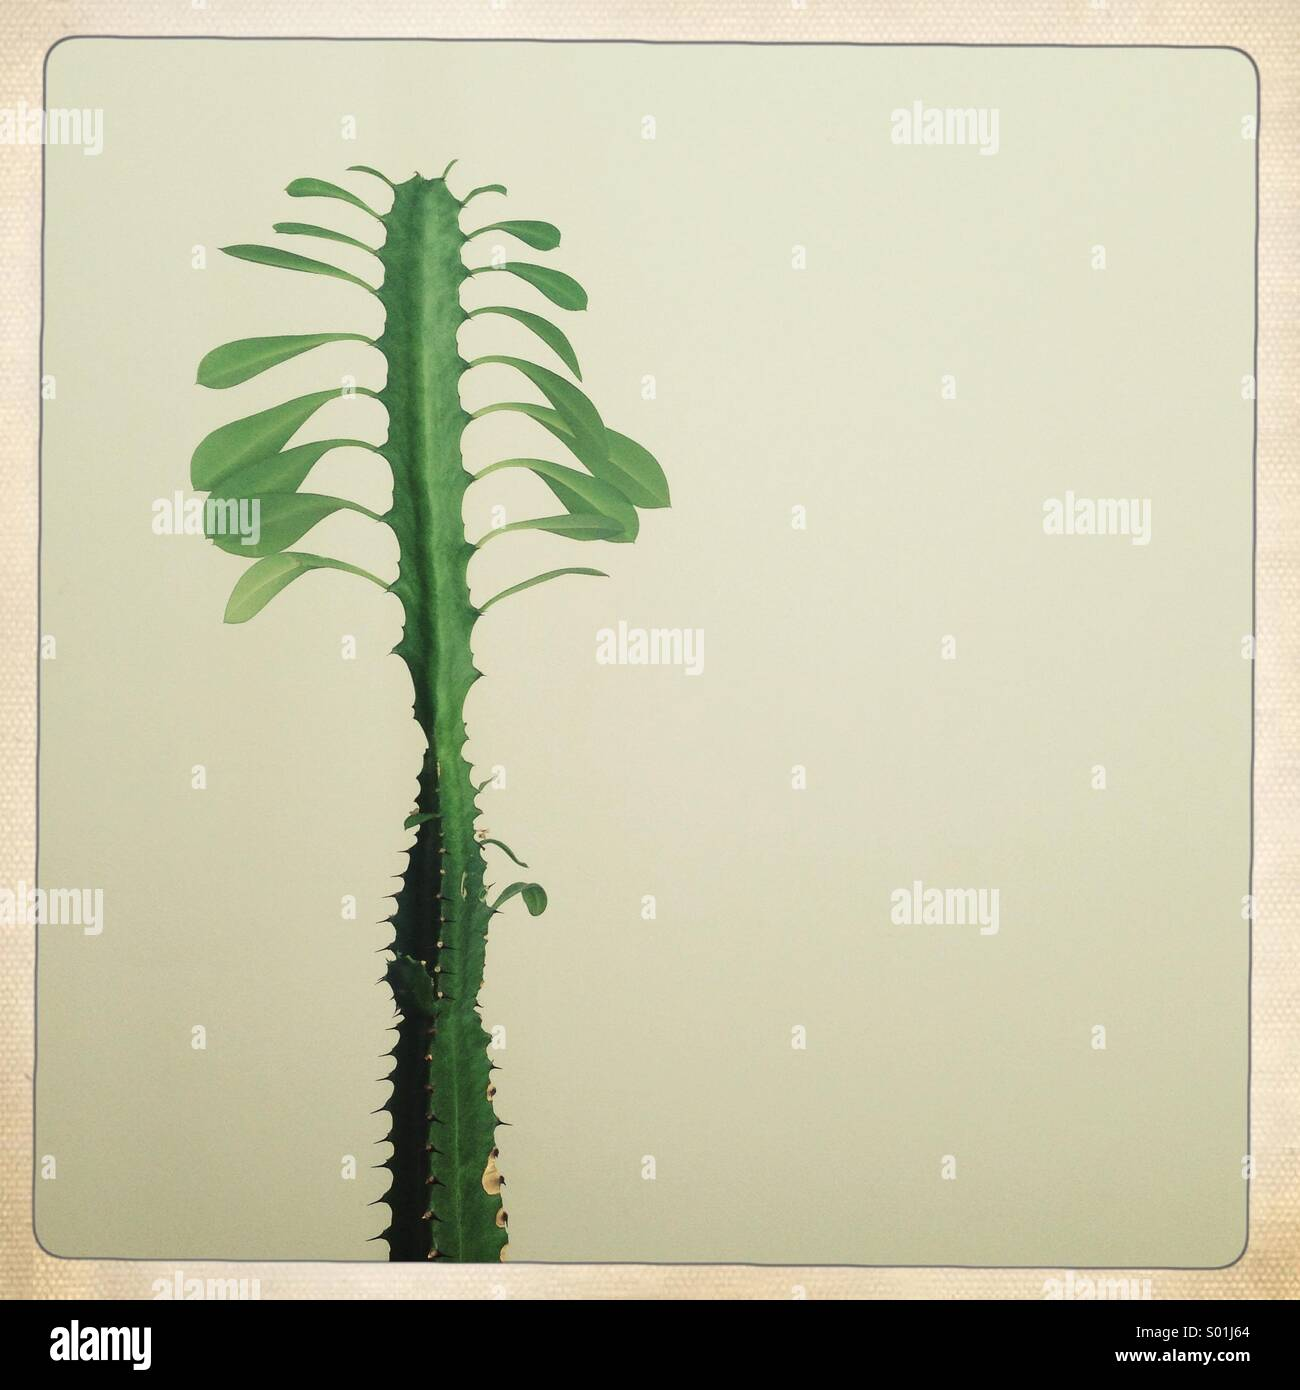 cactus leaves at home - Stock Image